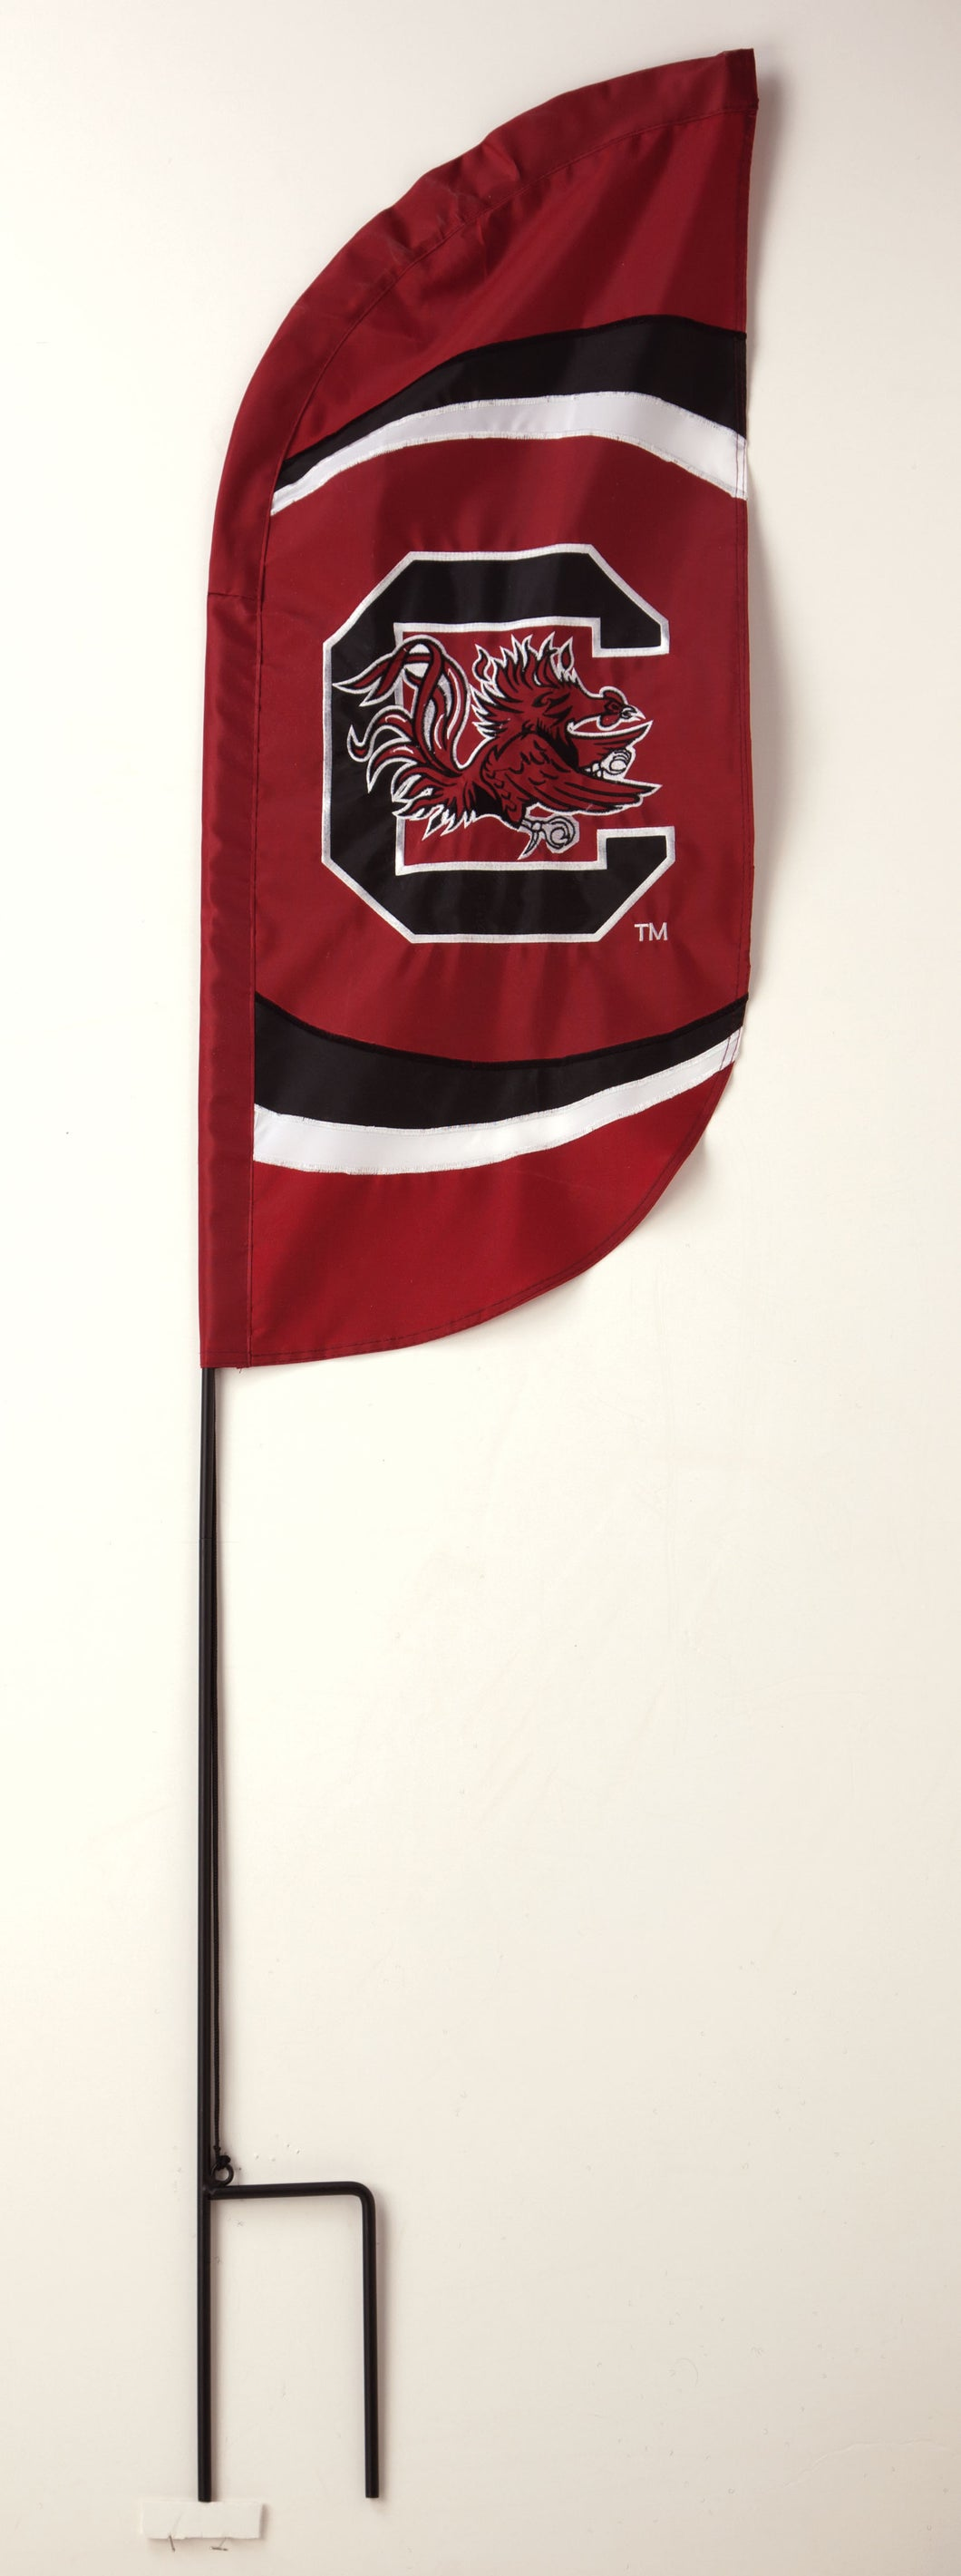 University of South Carolina Feather Banner